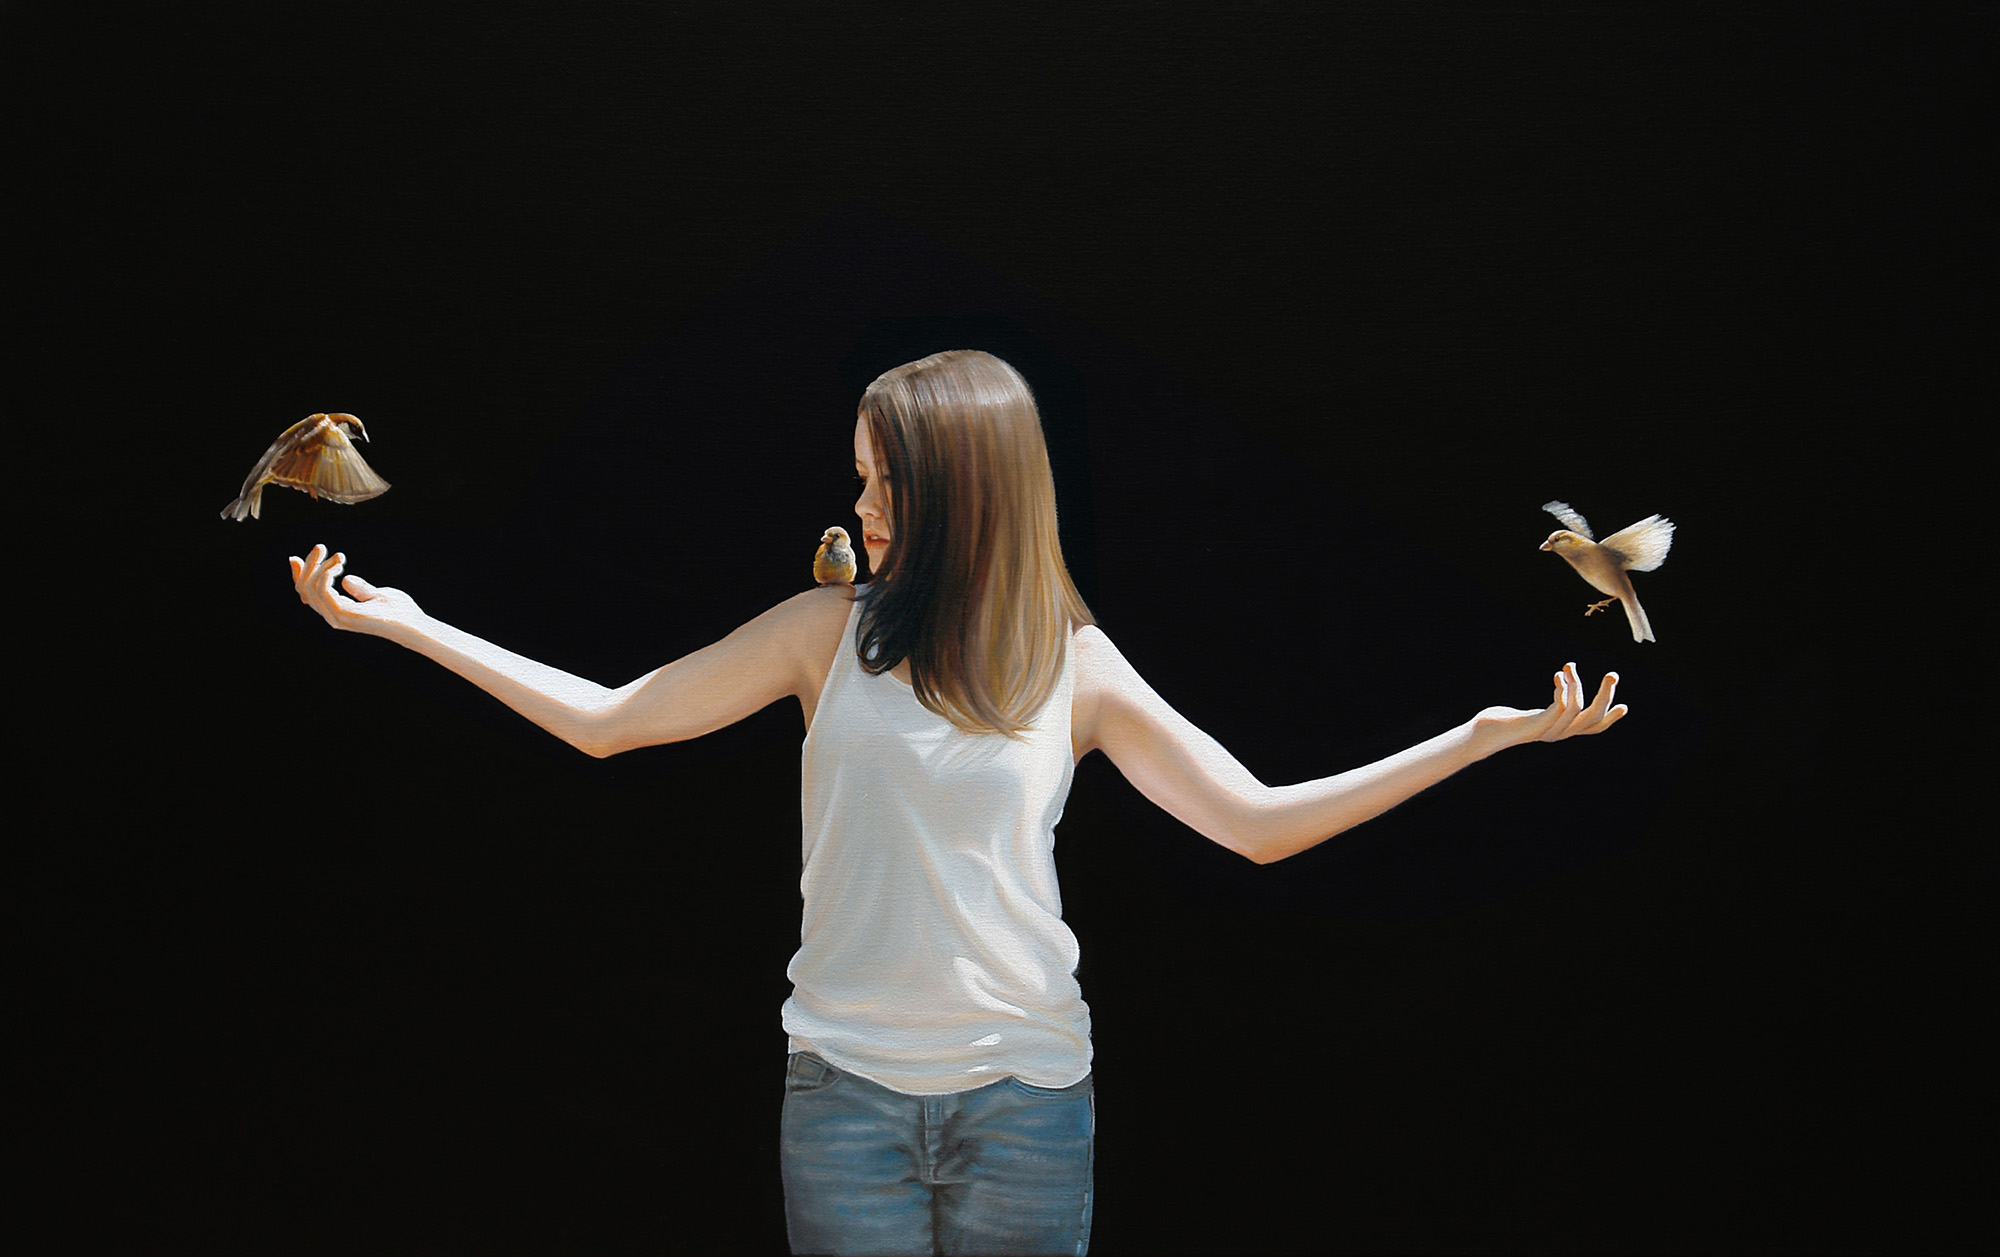 Wingspan  |  30 x 48  |  Oil on canvas